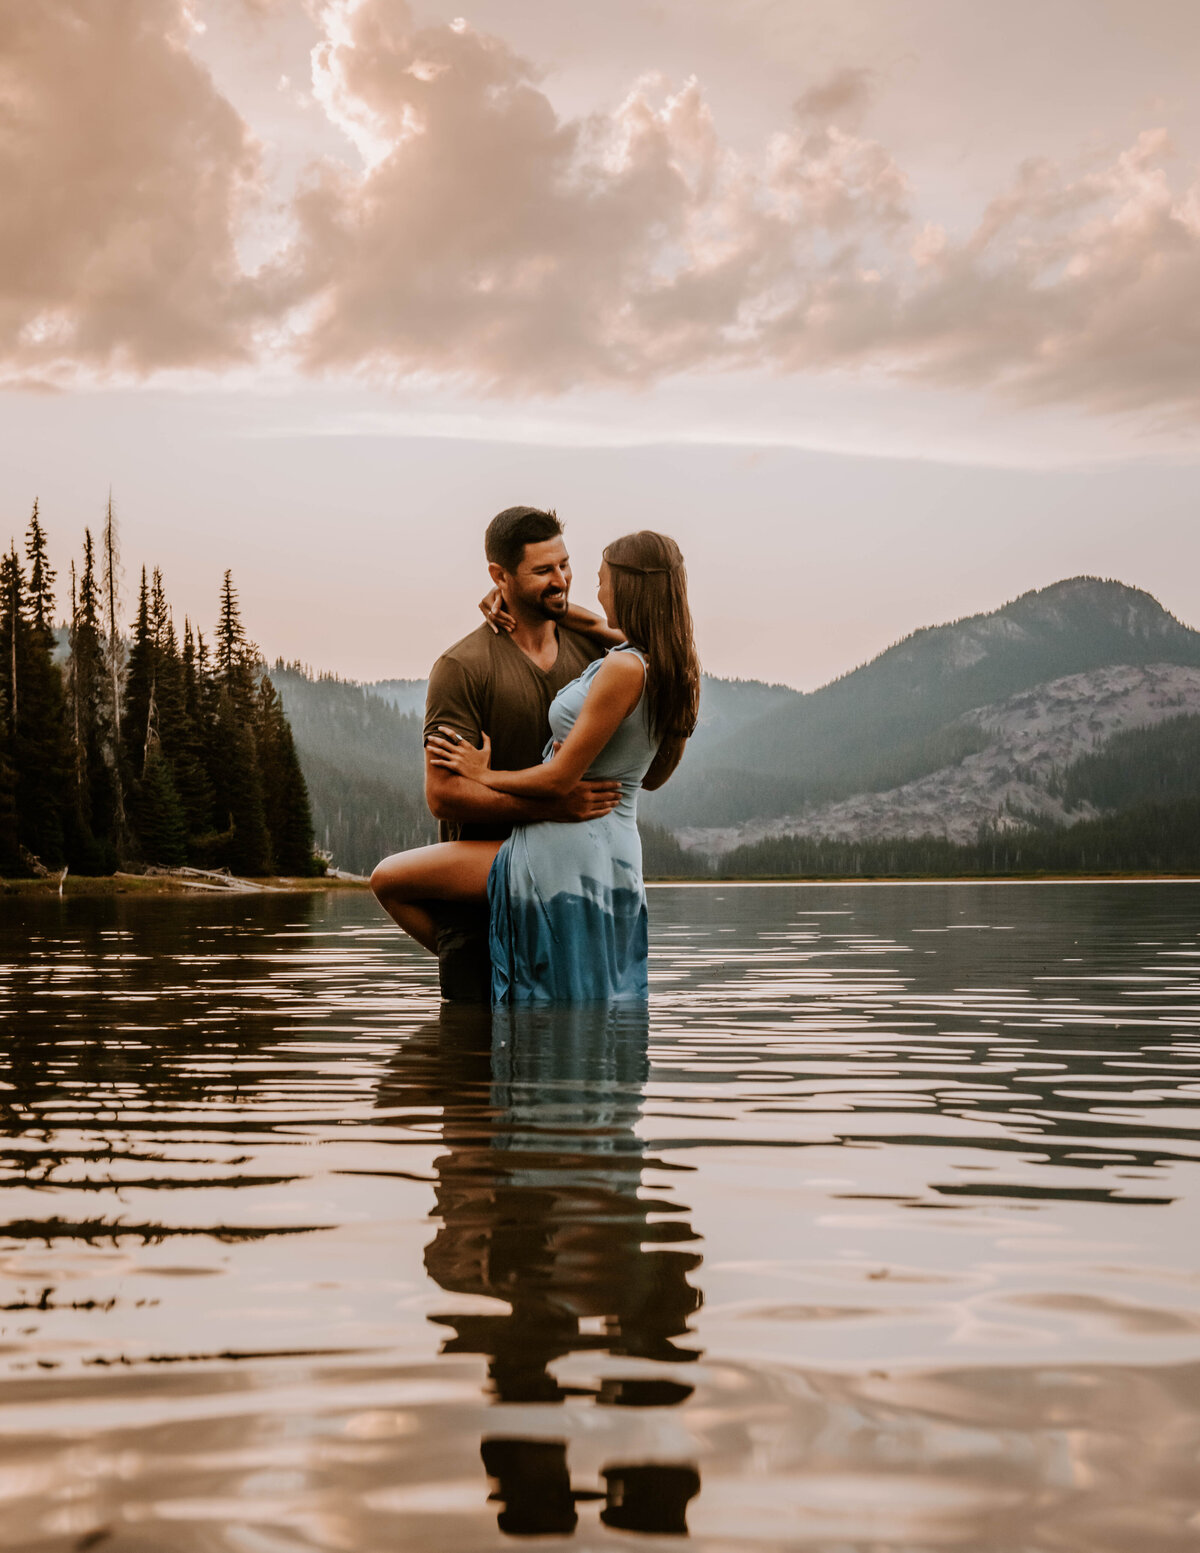 sparks-lake-oregon-couple-photographer-elopement-bend-lakes-bachelor-sisters-sunset-6215